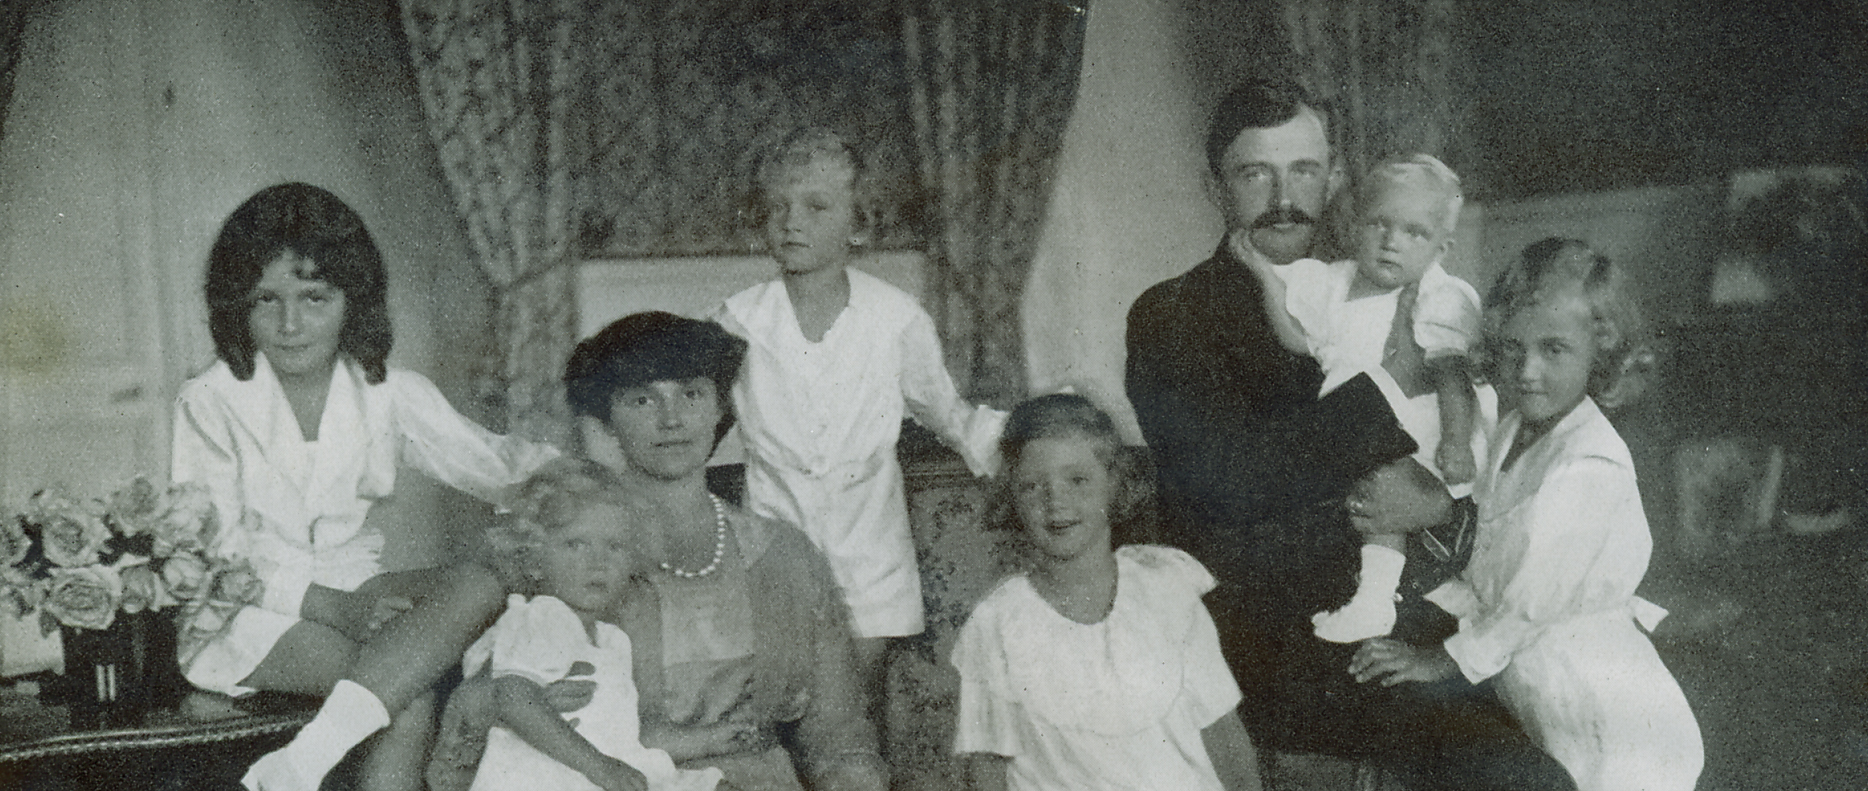 Emperor Karl and Empress Zita with their children while in exile.